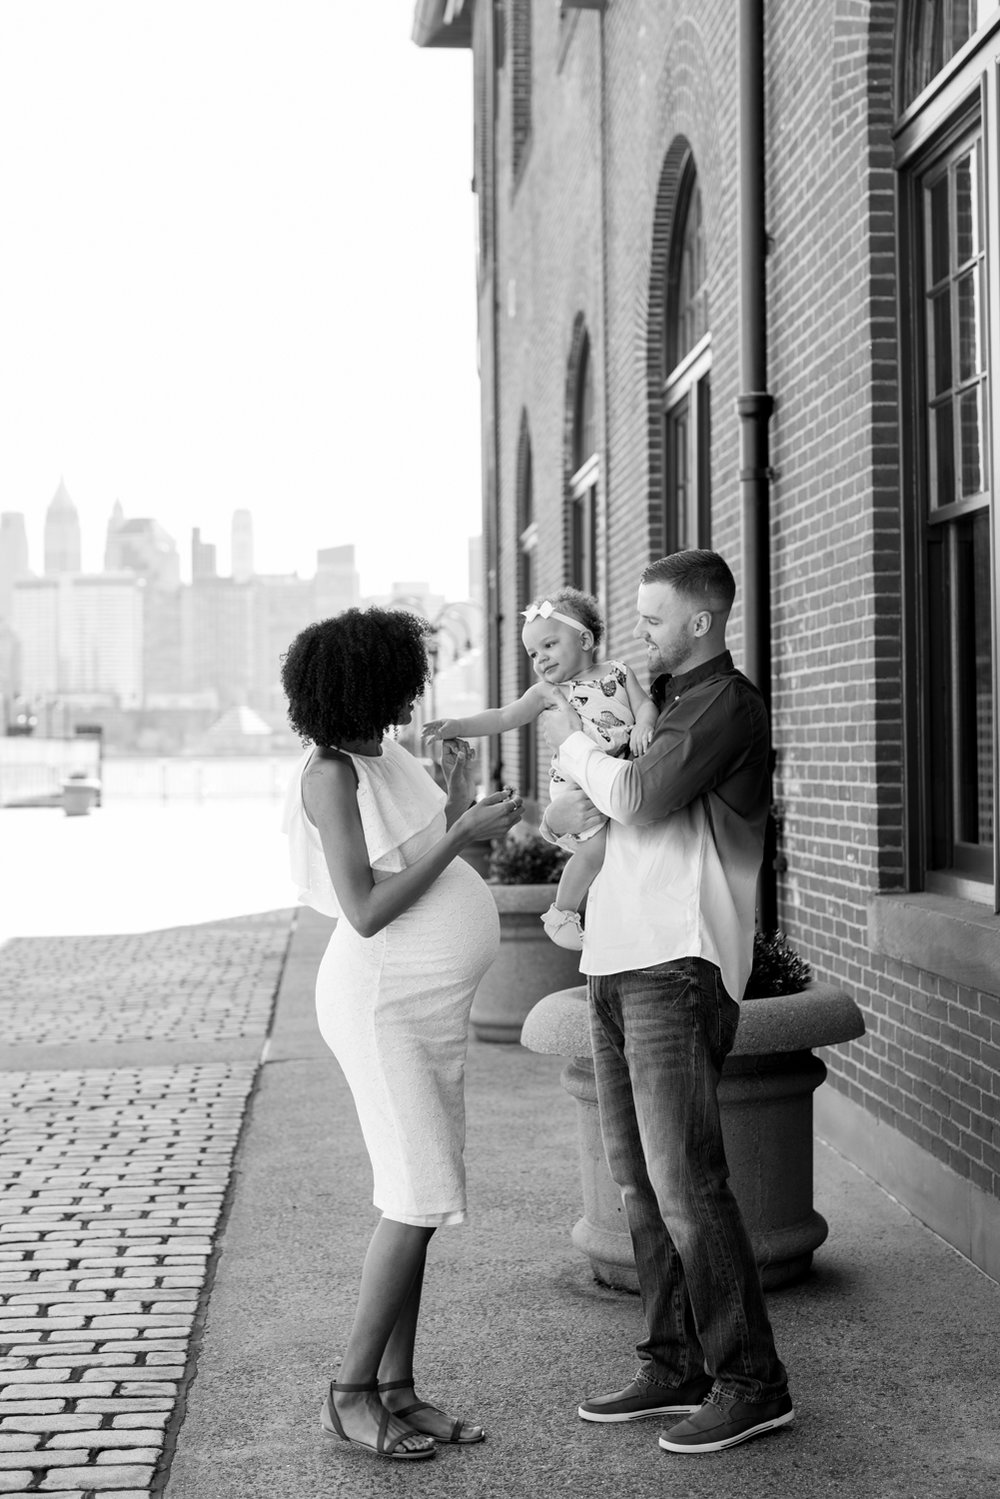 Unger Family Photos- Lifestyle Maternity Photos-Liberty State Park Jersey City- New Jersey- Olivia Christina Photo-40.JPG